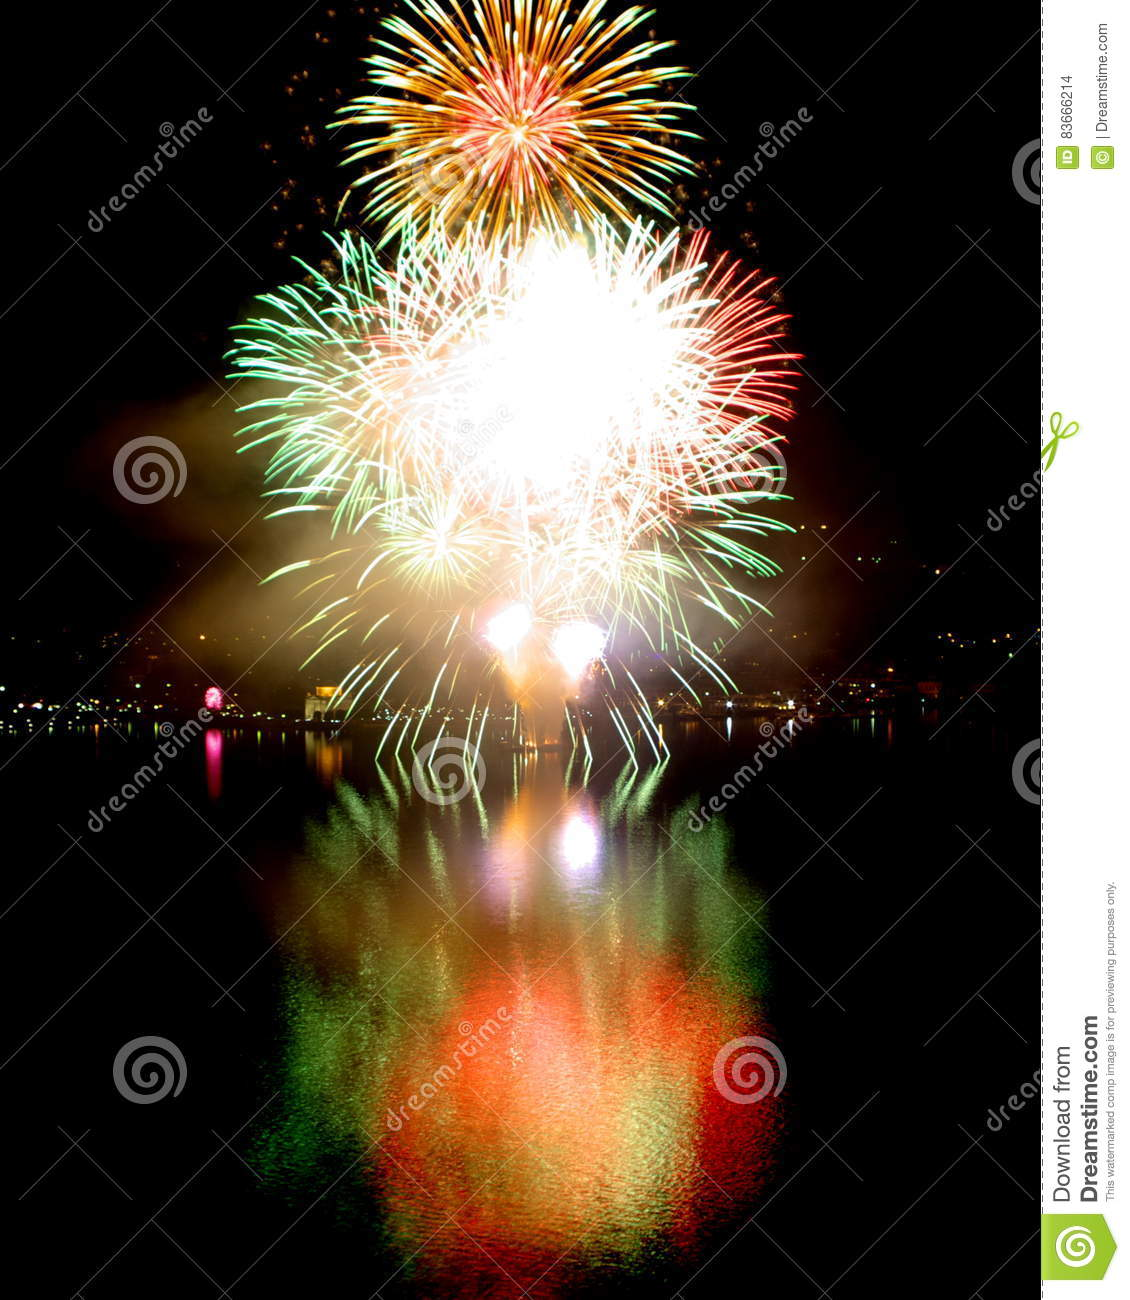 Denver New Years Fireworks6 By Niel4: New Year`s Eve Fireworks Big Bang Stock Photo